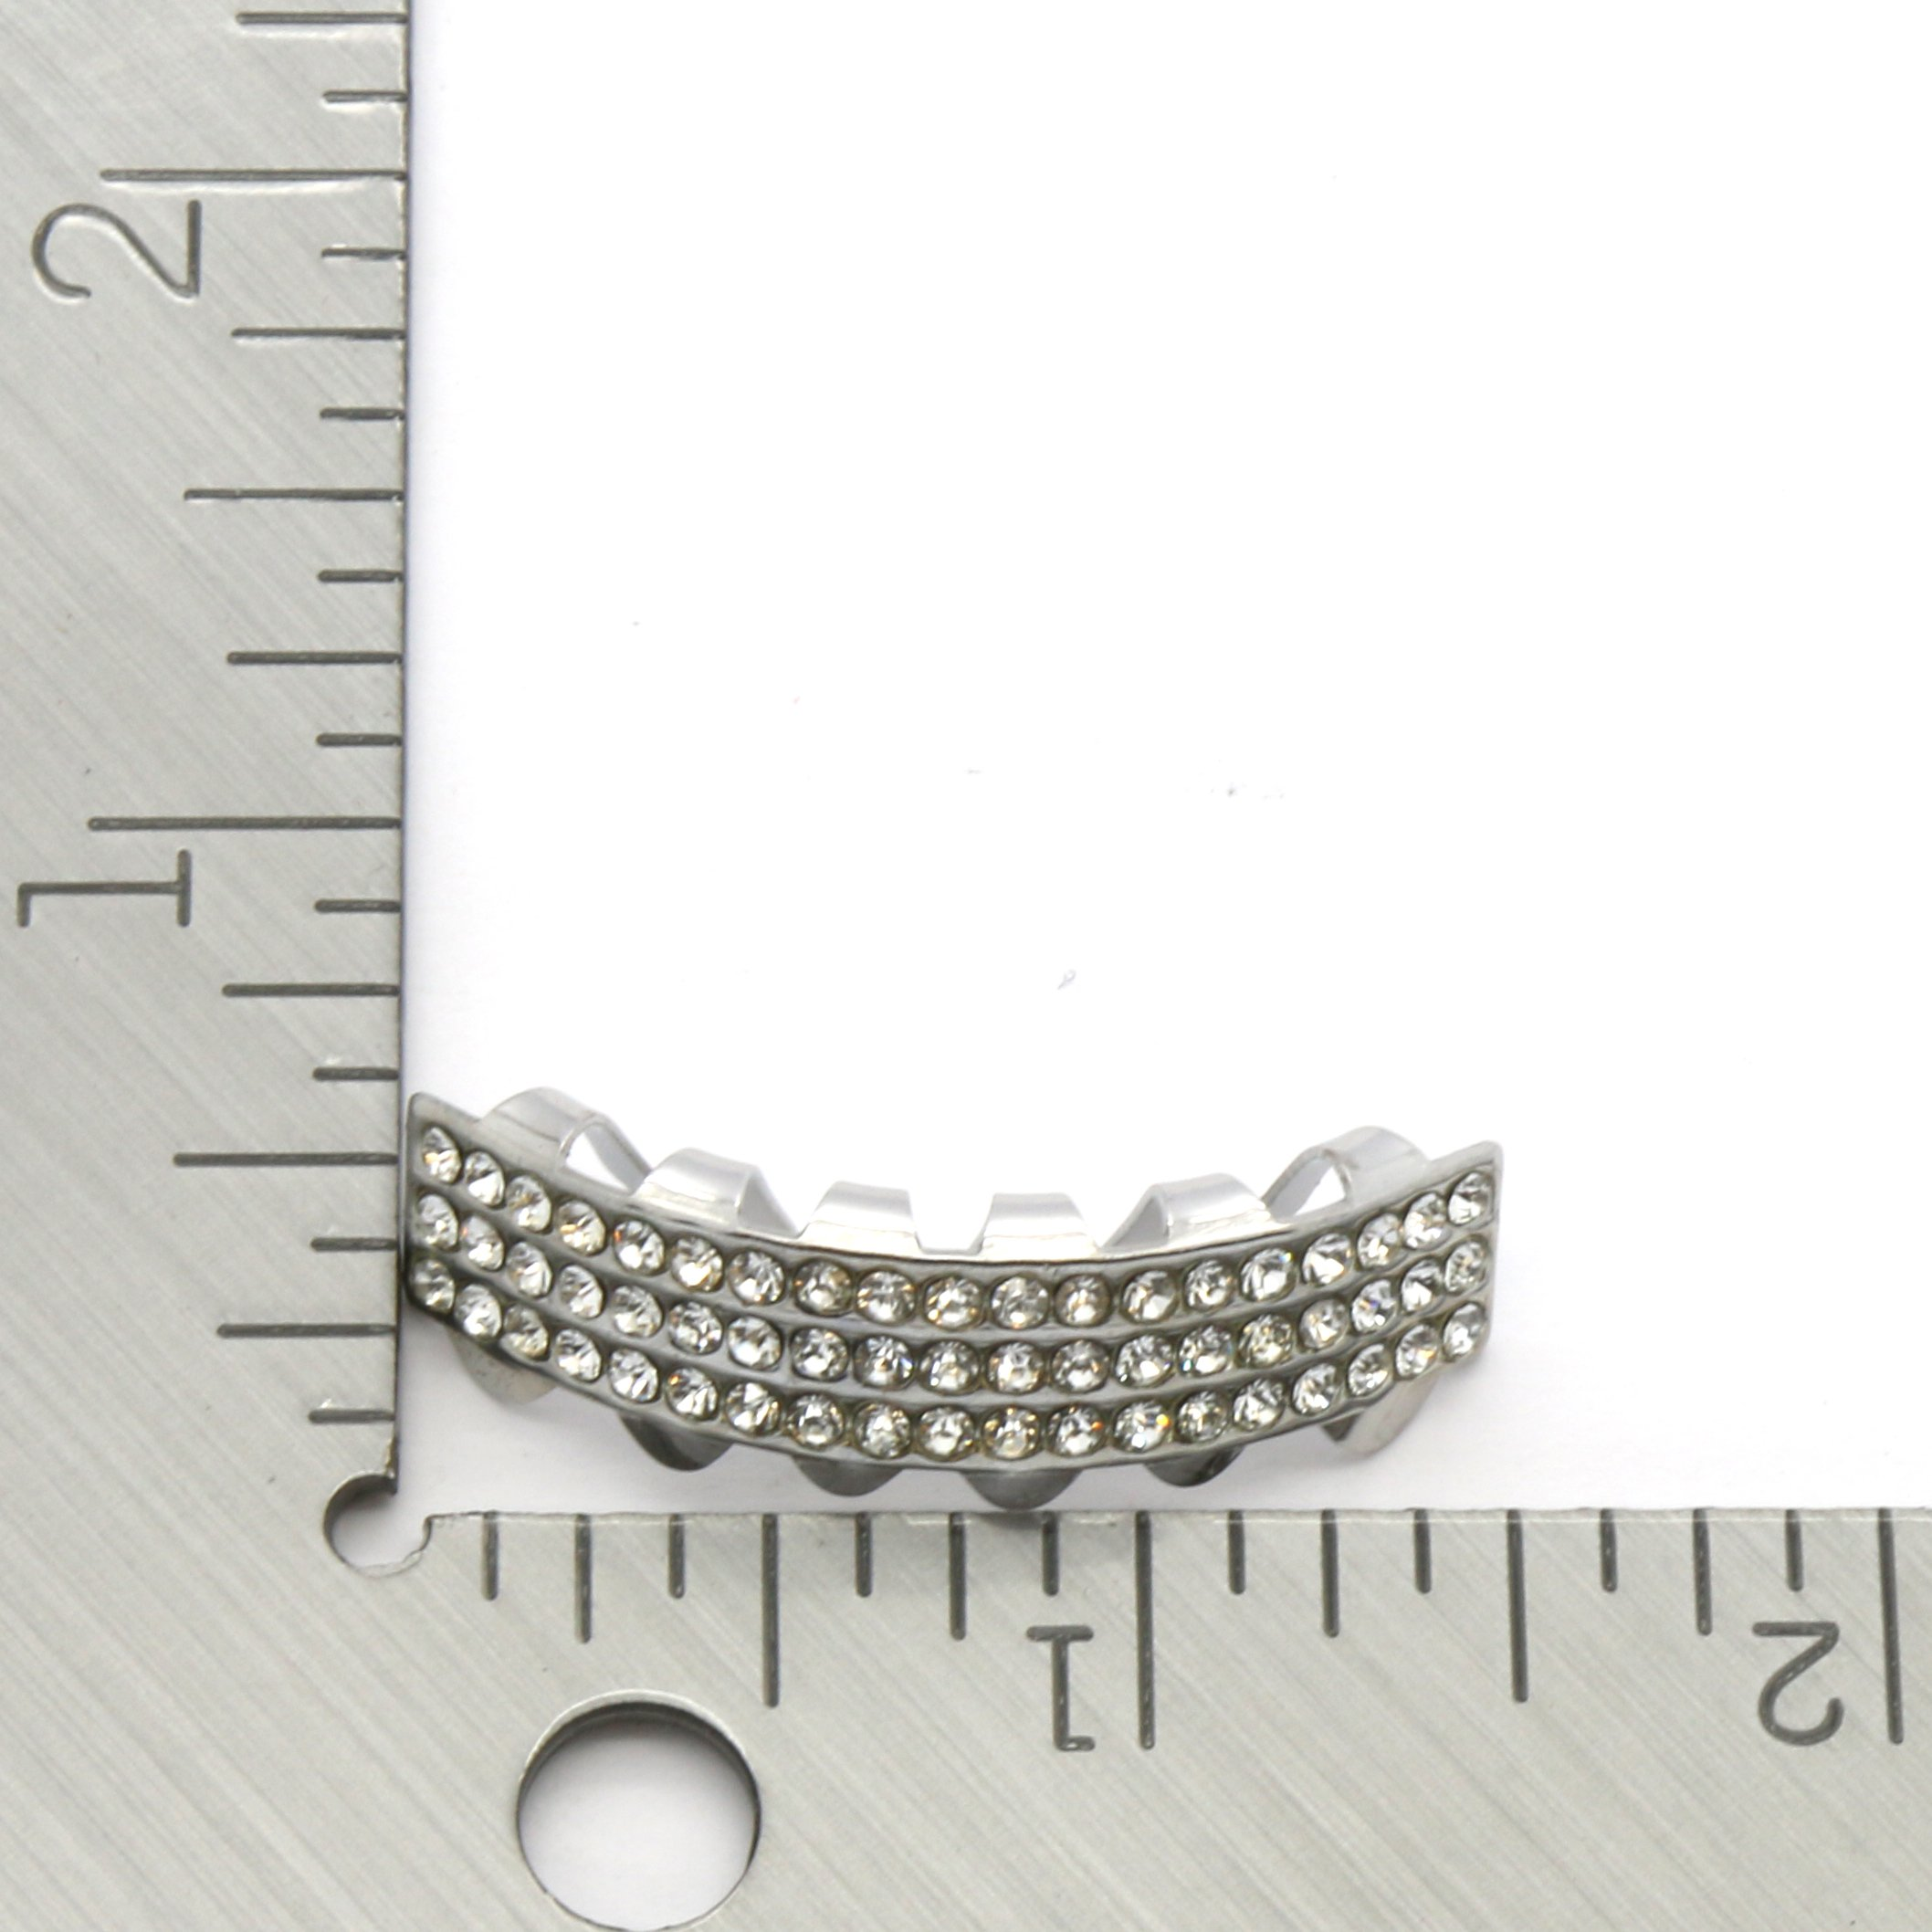 Hip Hop Bottom Row Silver Tone 3 Clear Rows Removeable Grillz